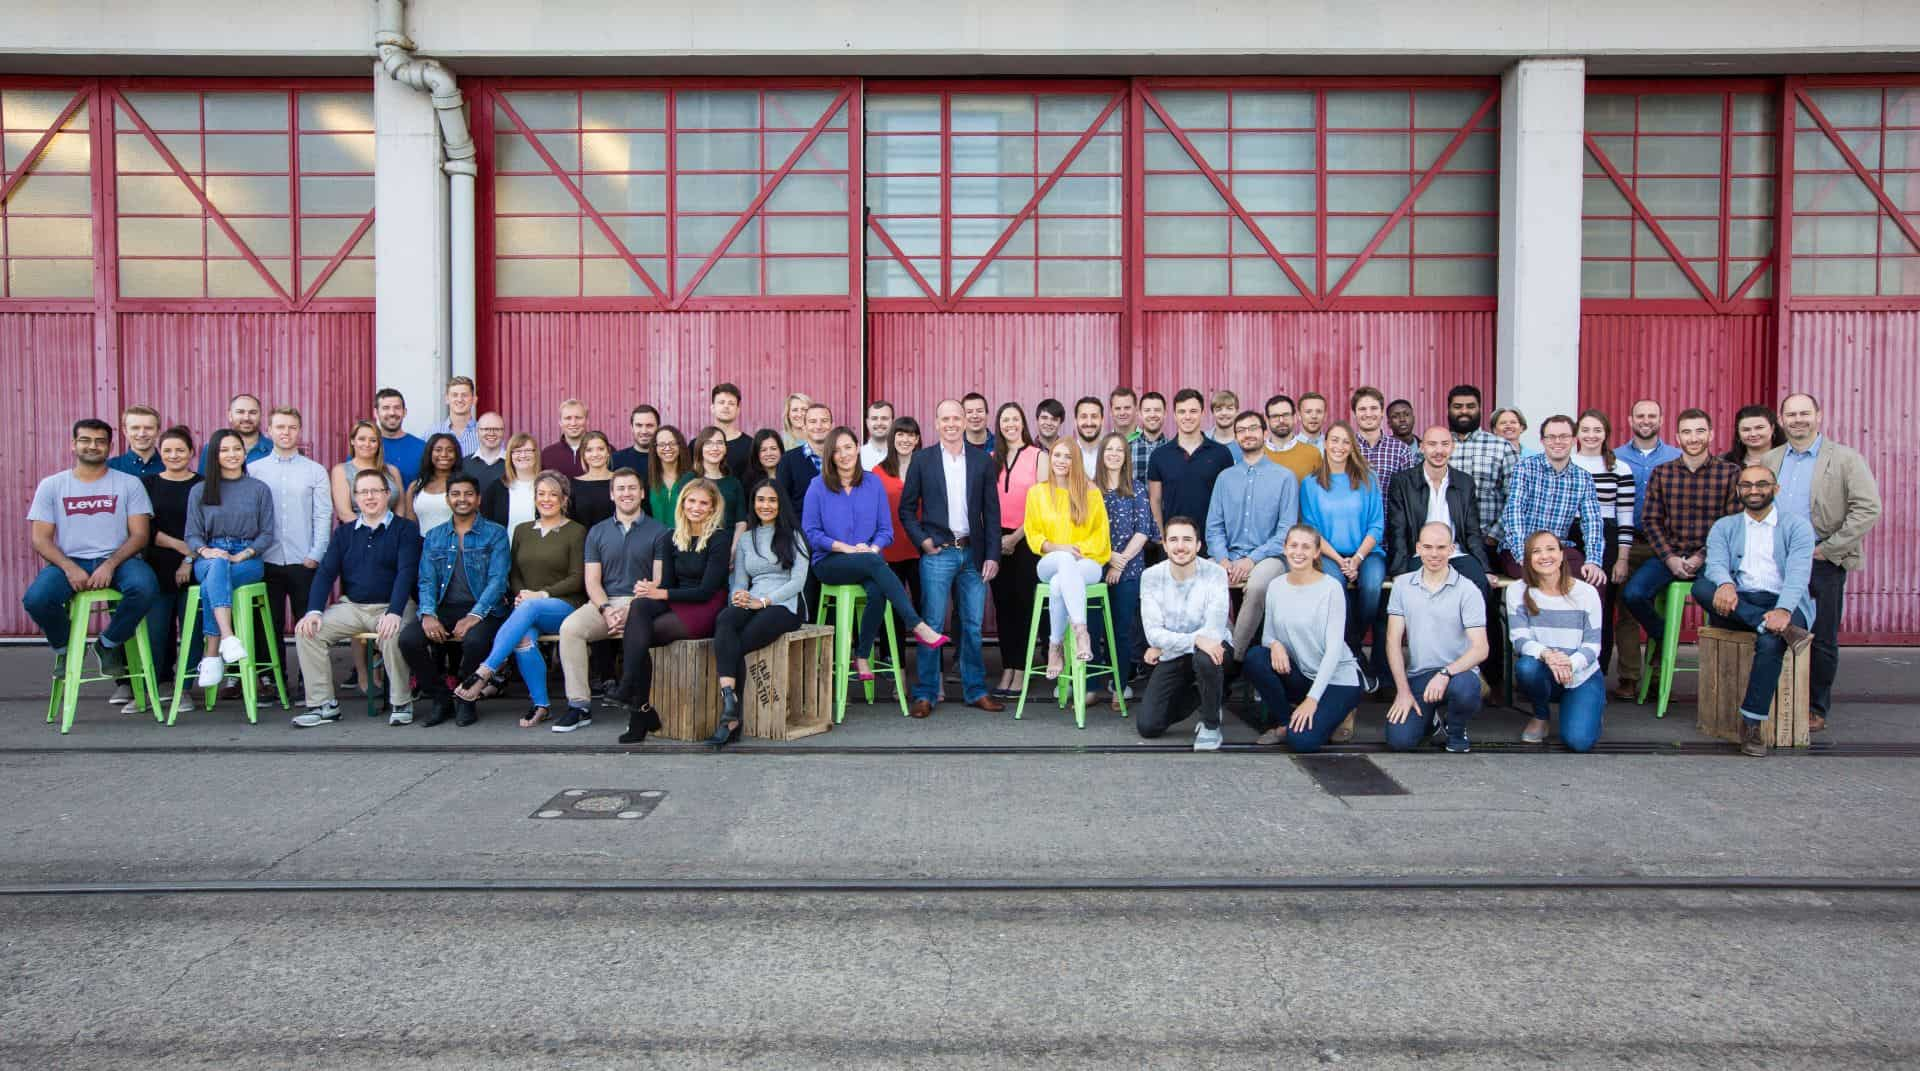 the ForrestBrown team 2018 at Bristol's M-Shed